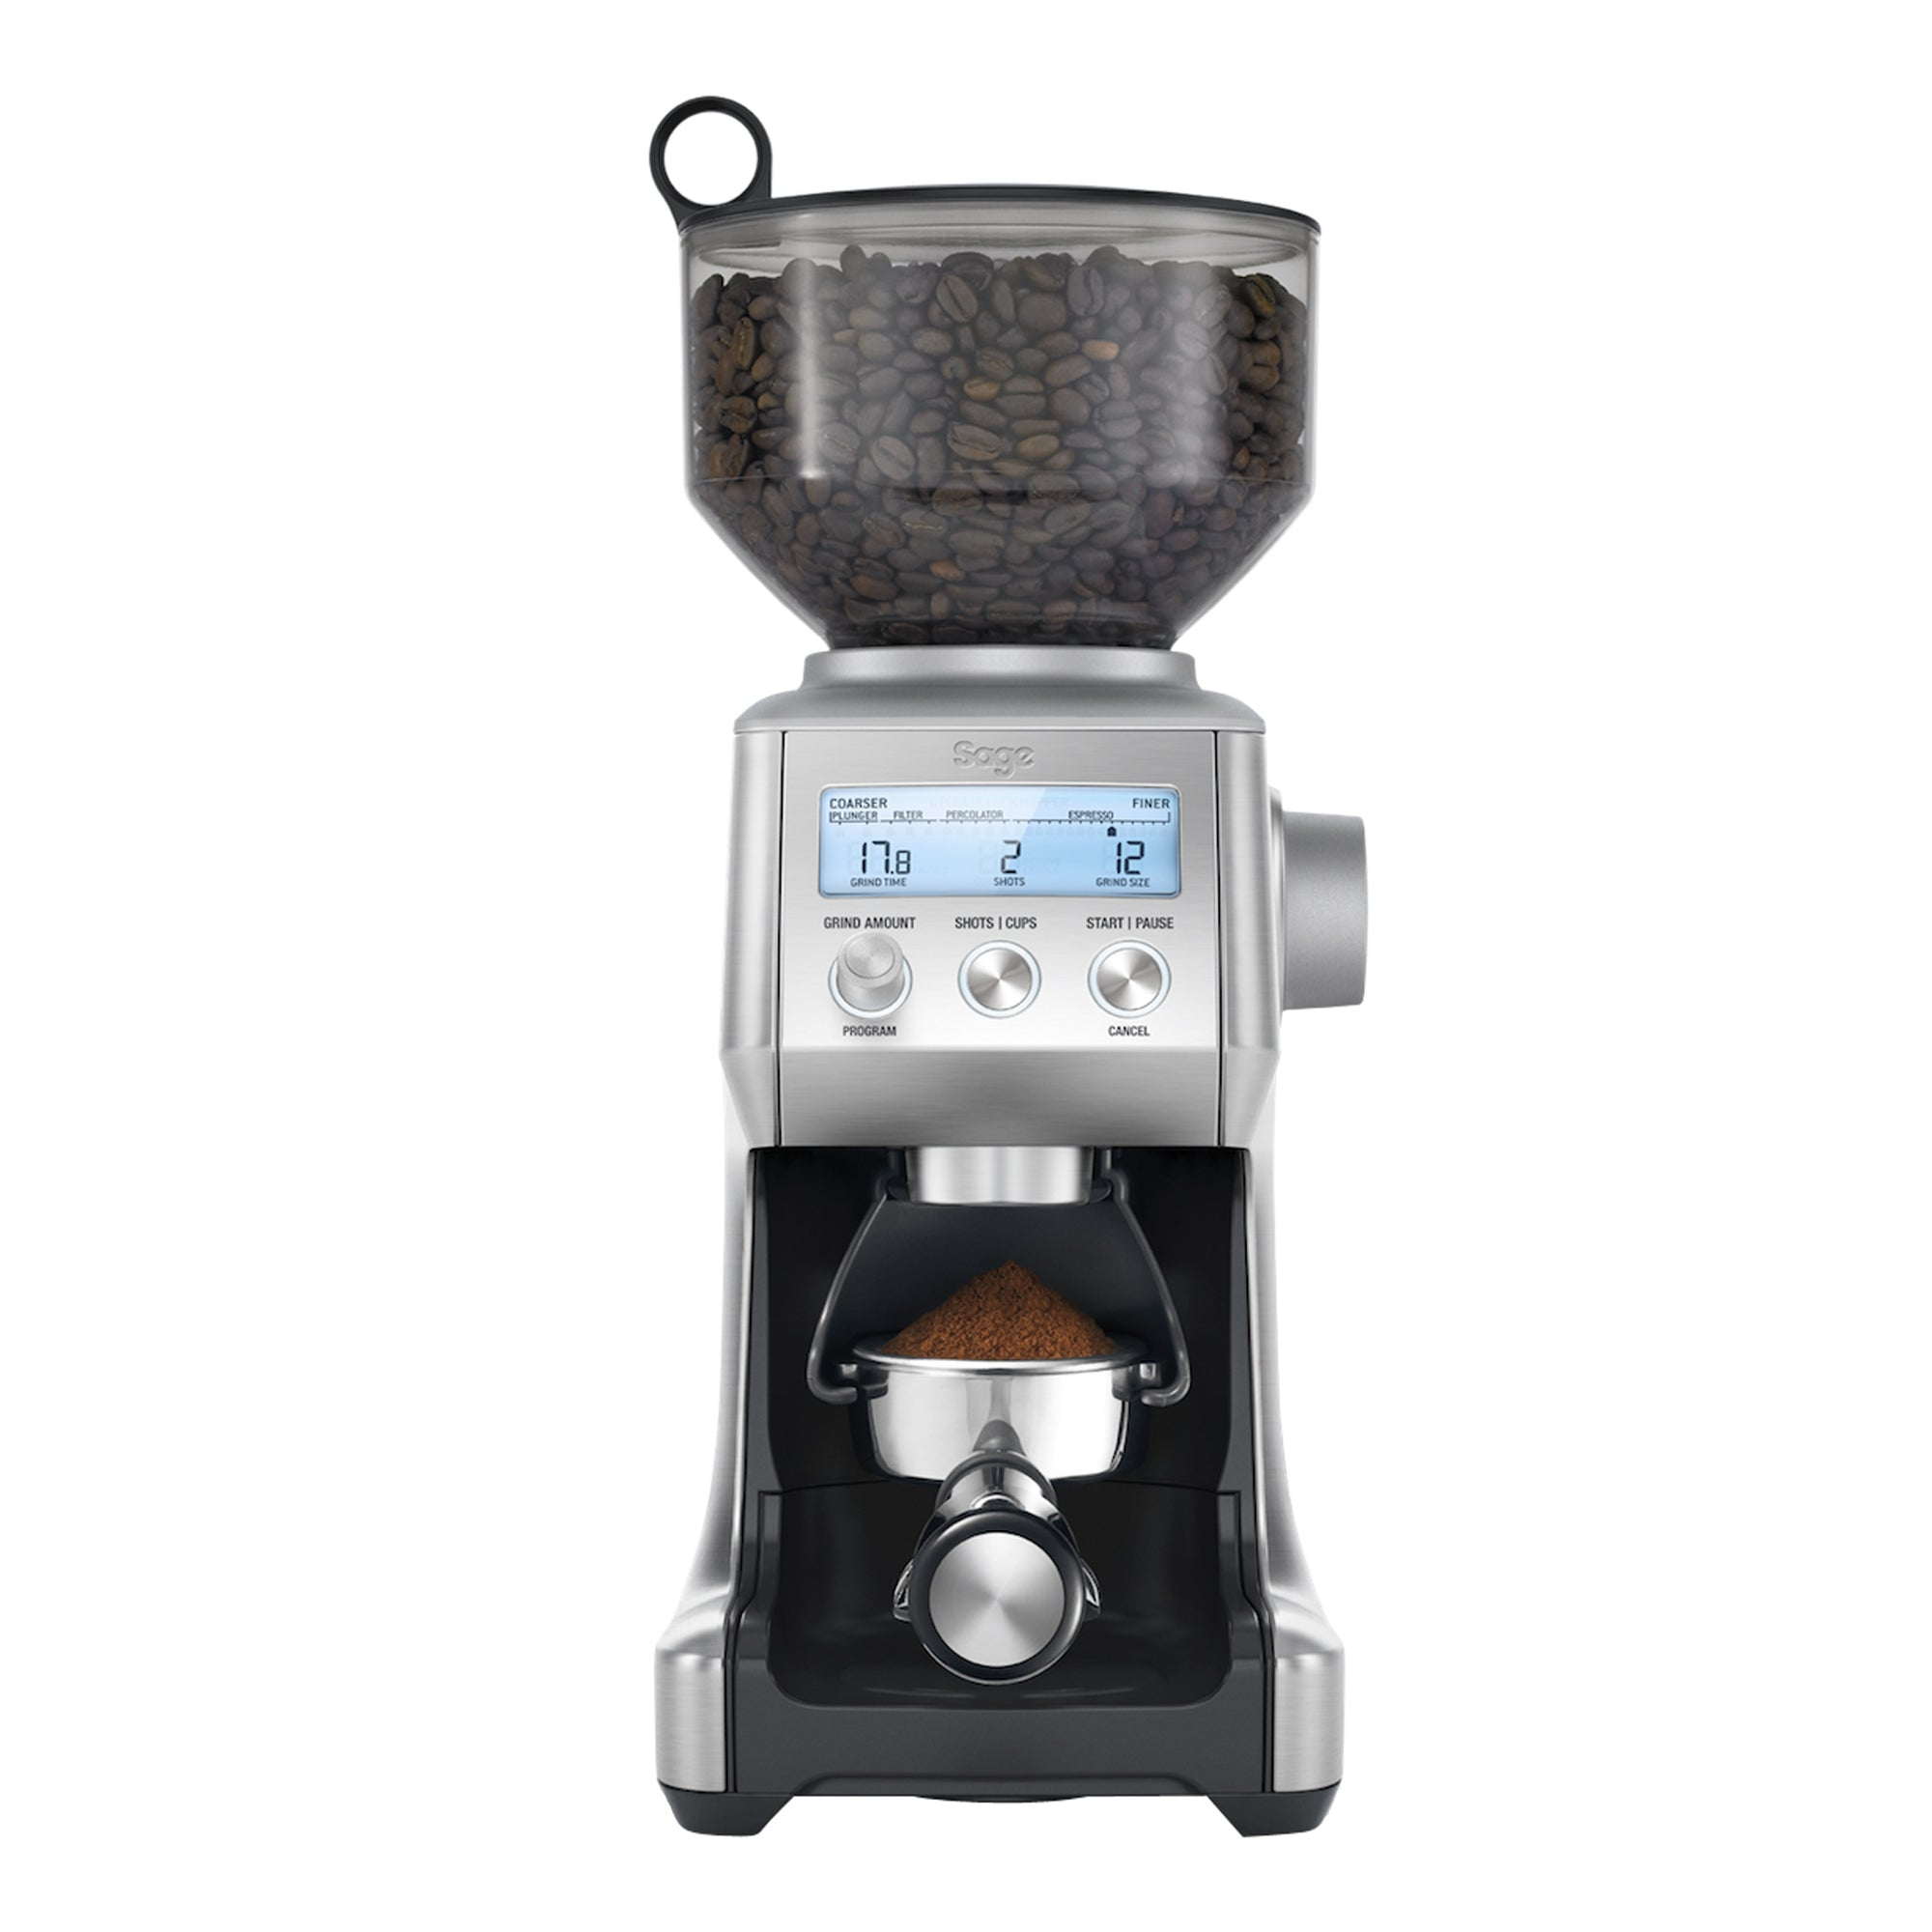 Grinder, The Smart Grinder - Sage - Espresso Gear